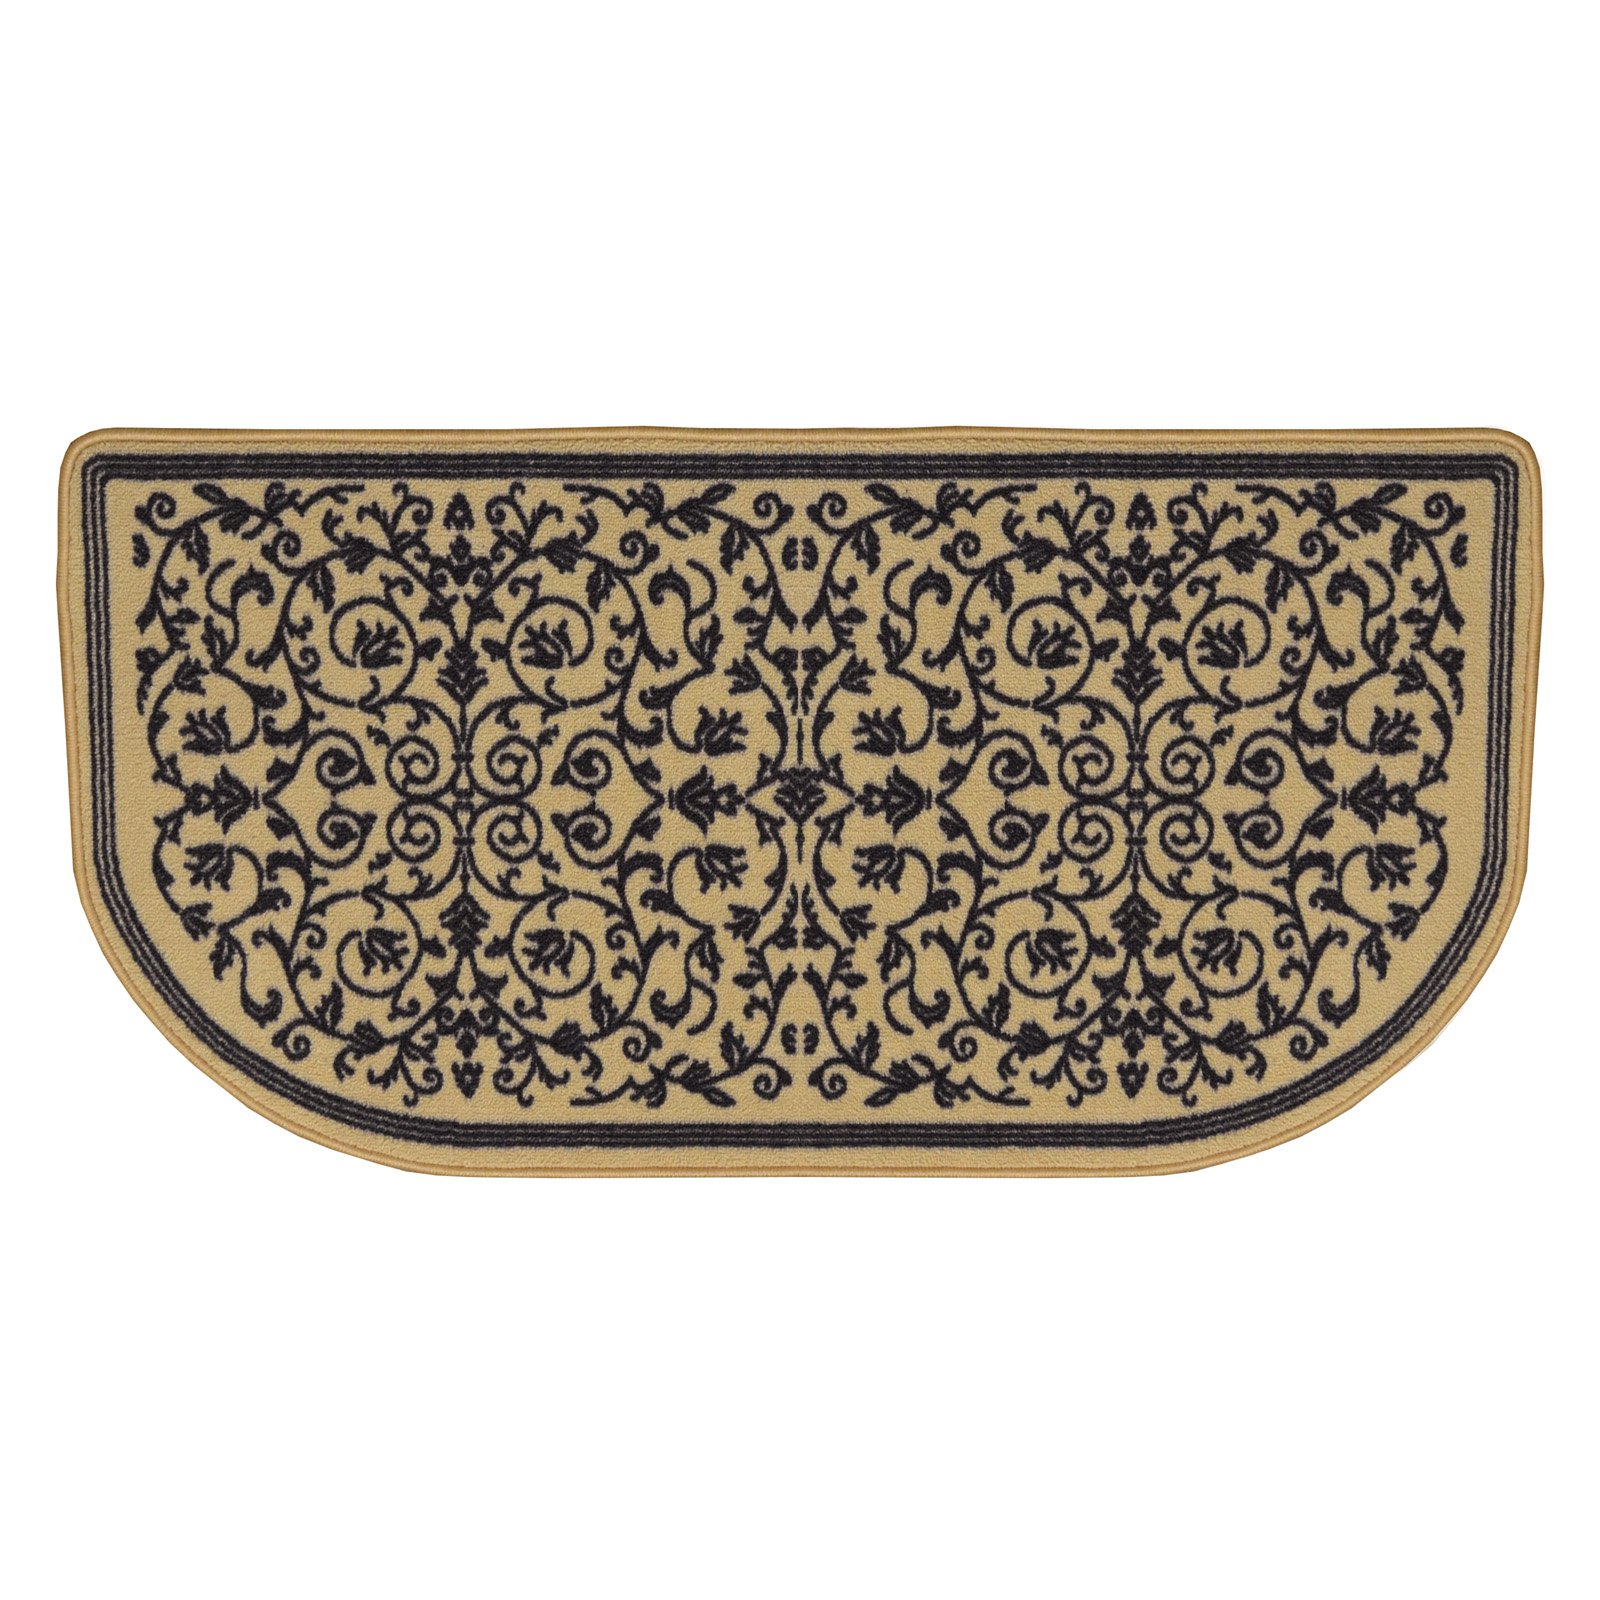 Uniflame Nylon Hearth Rug - Scrollwork